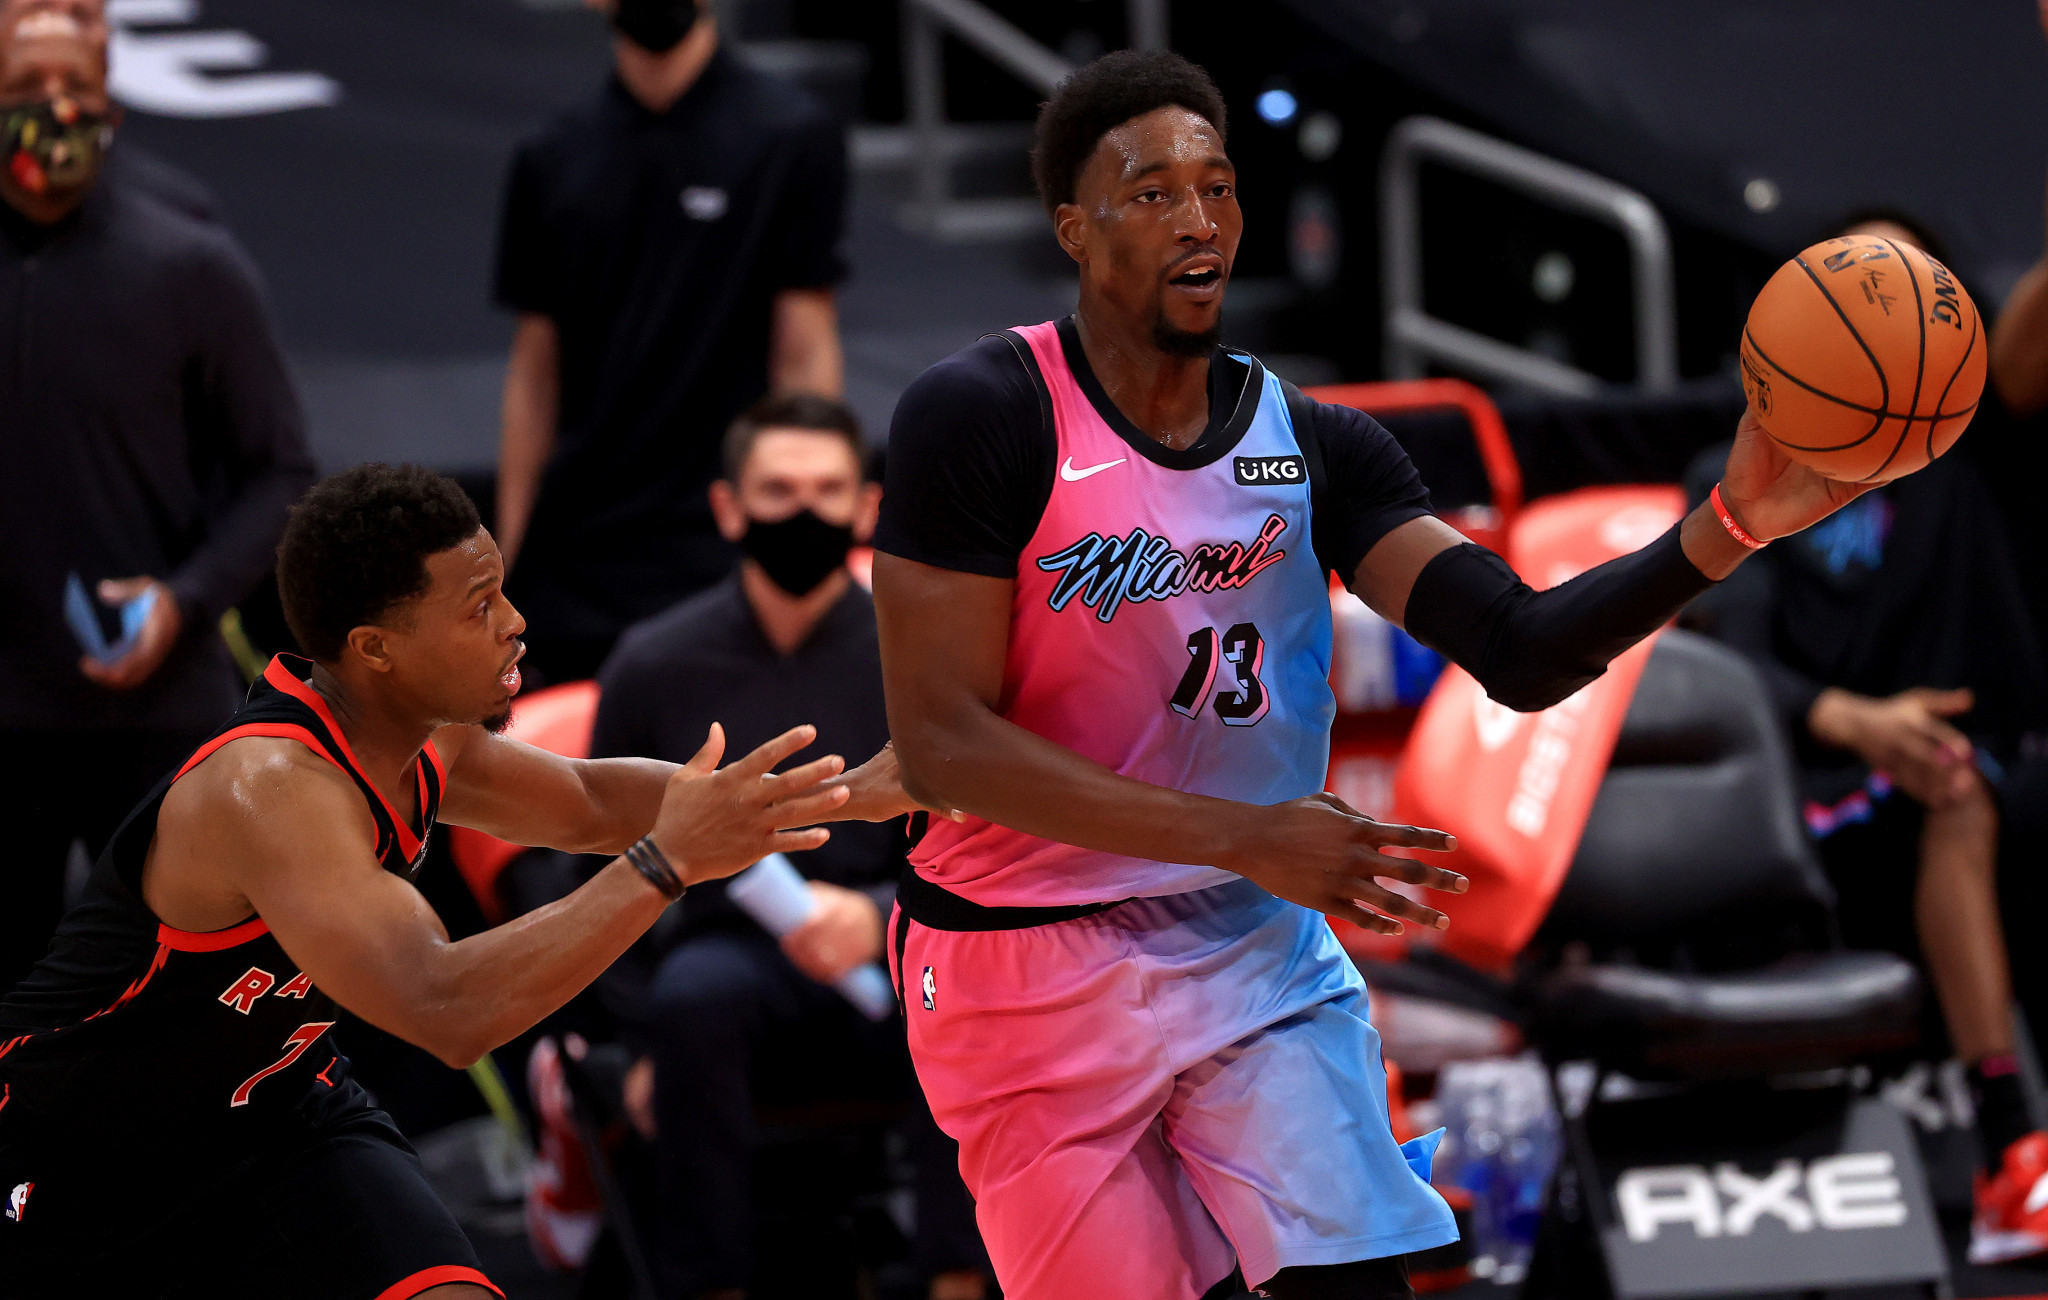 Bam Adebayo of Miami Heat is thought to be among the players sent an invite for Tokyo 2020 by USA Basketball ©Getty Images